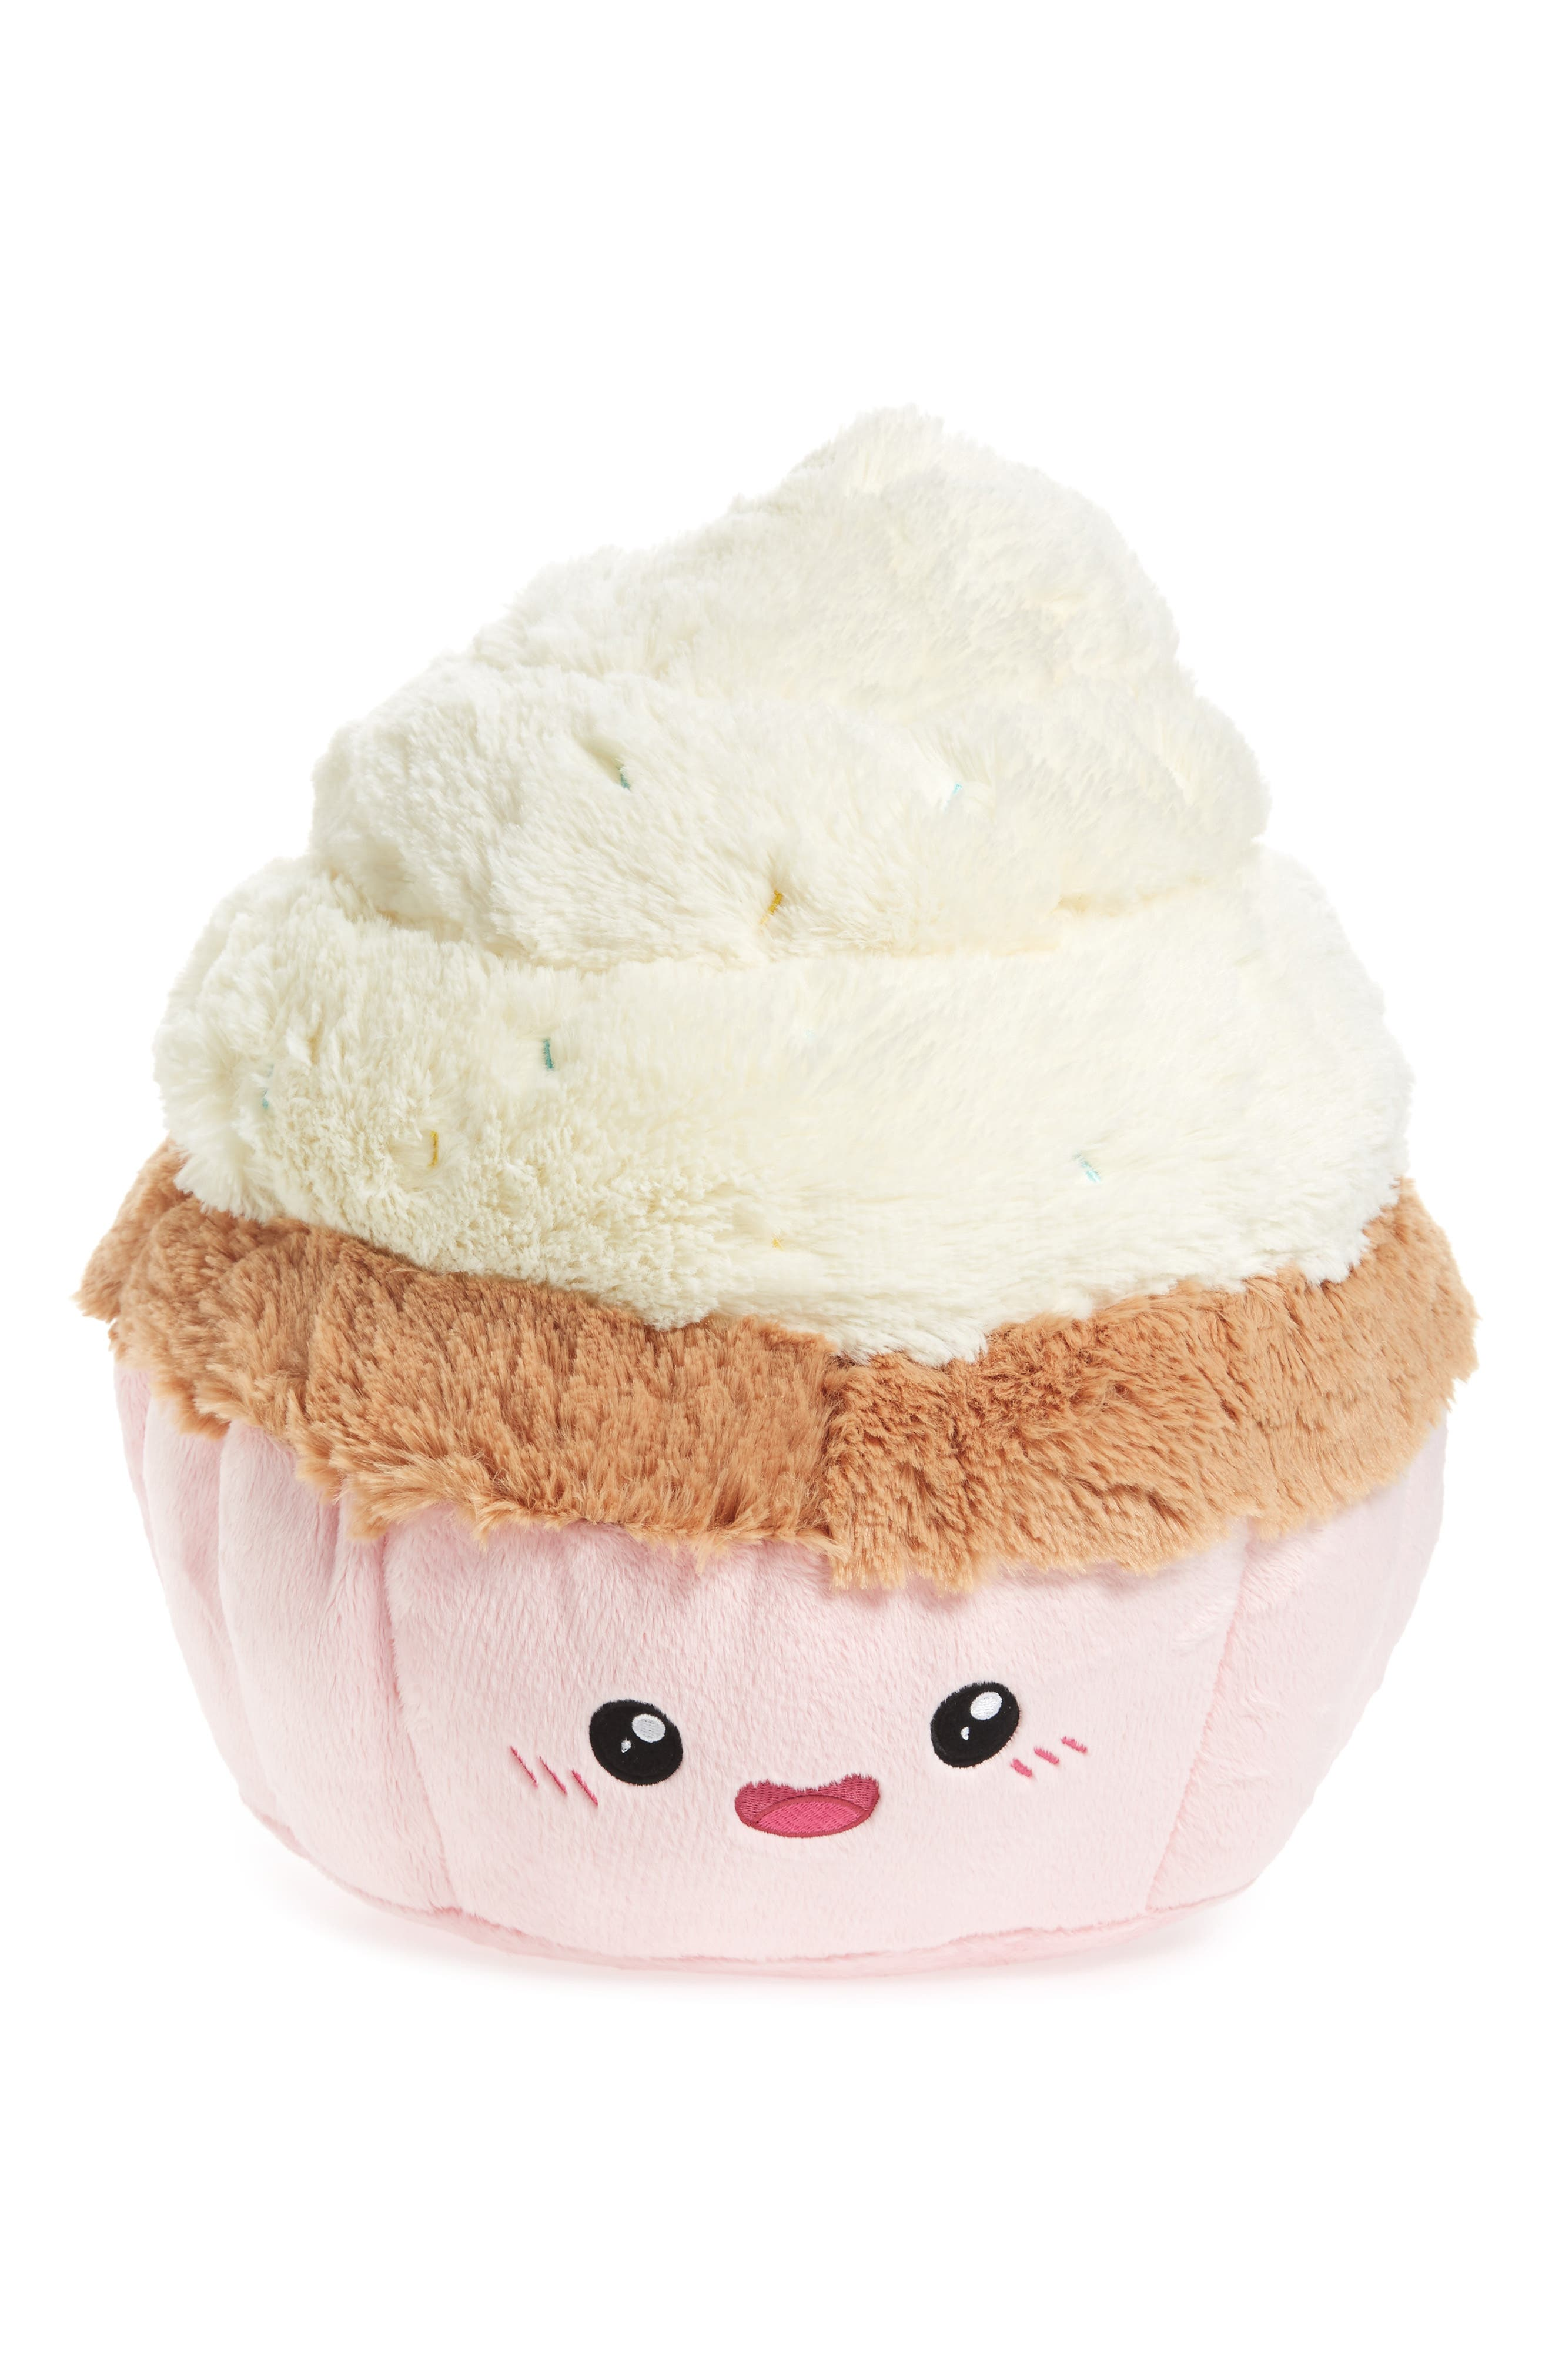 Vanilla Cupcake Stuffed Toy,                         Main,                         color, 100